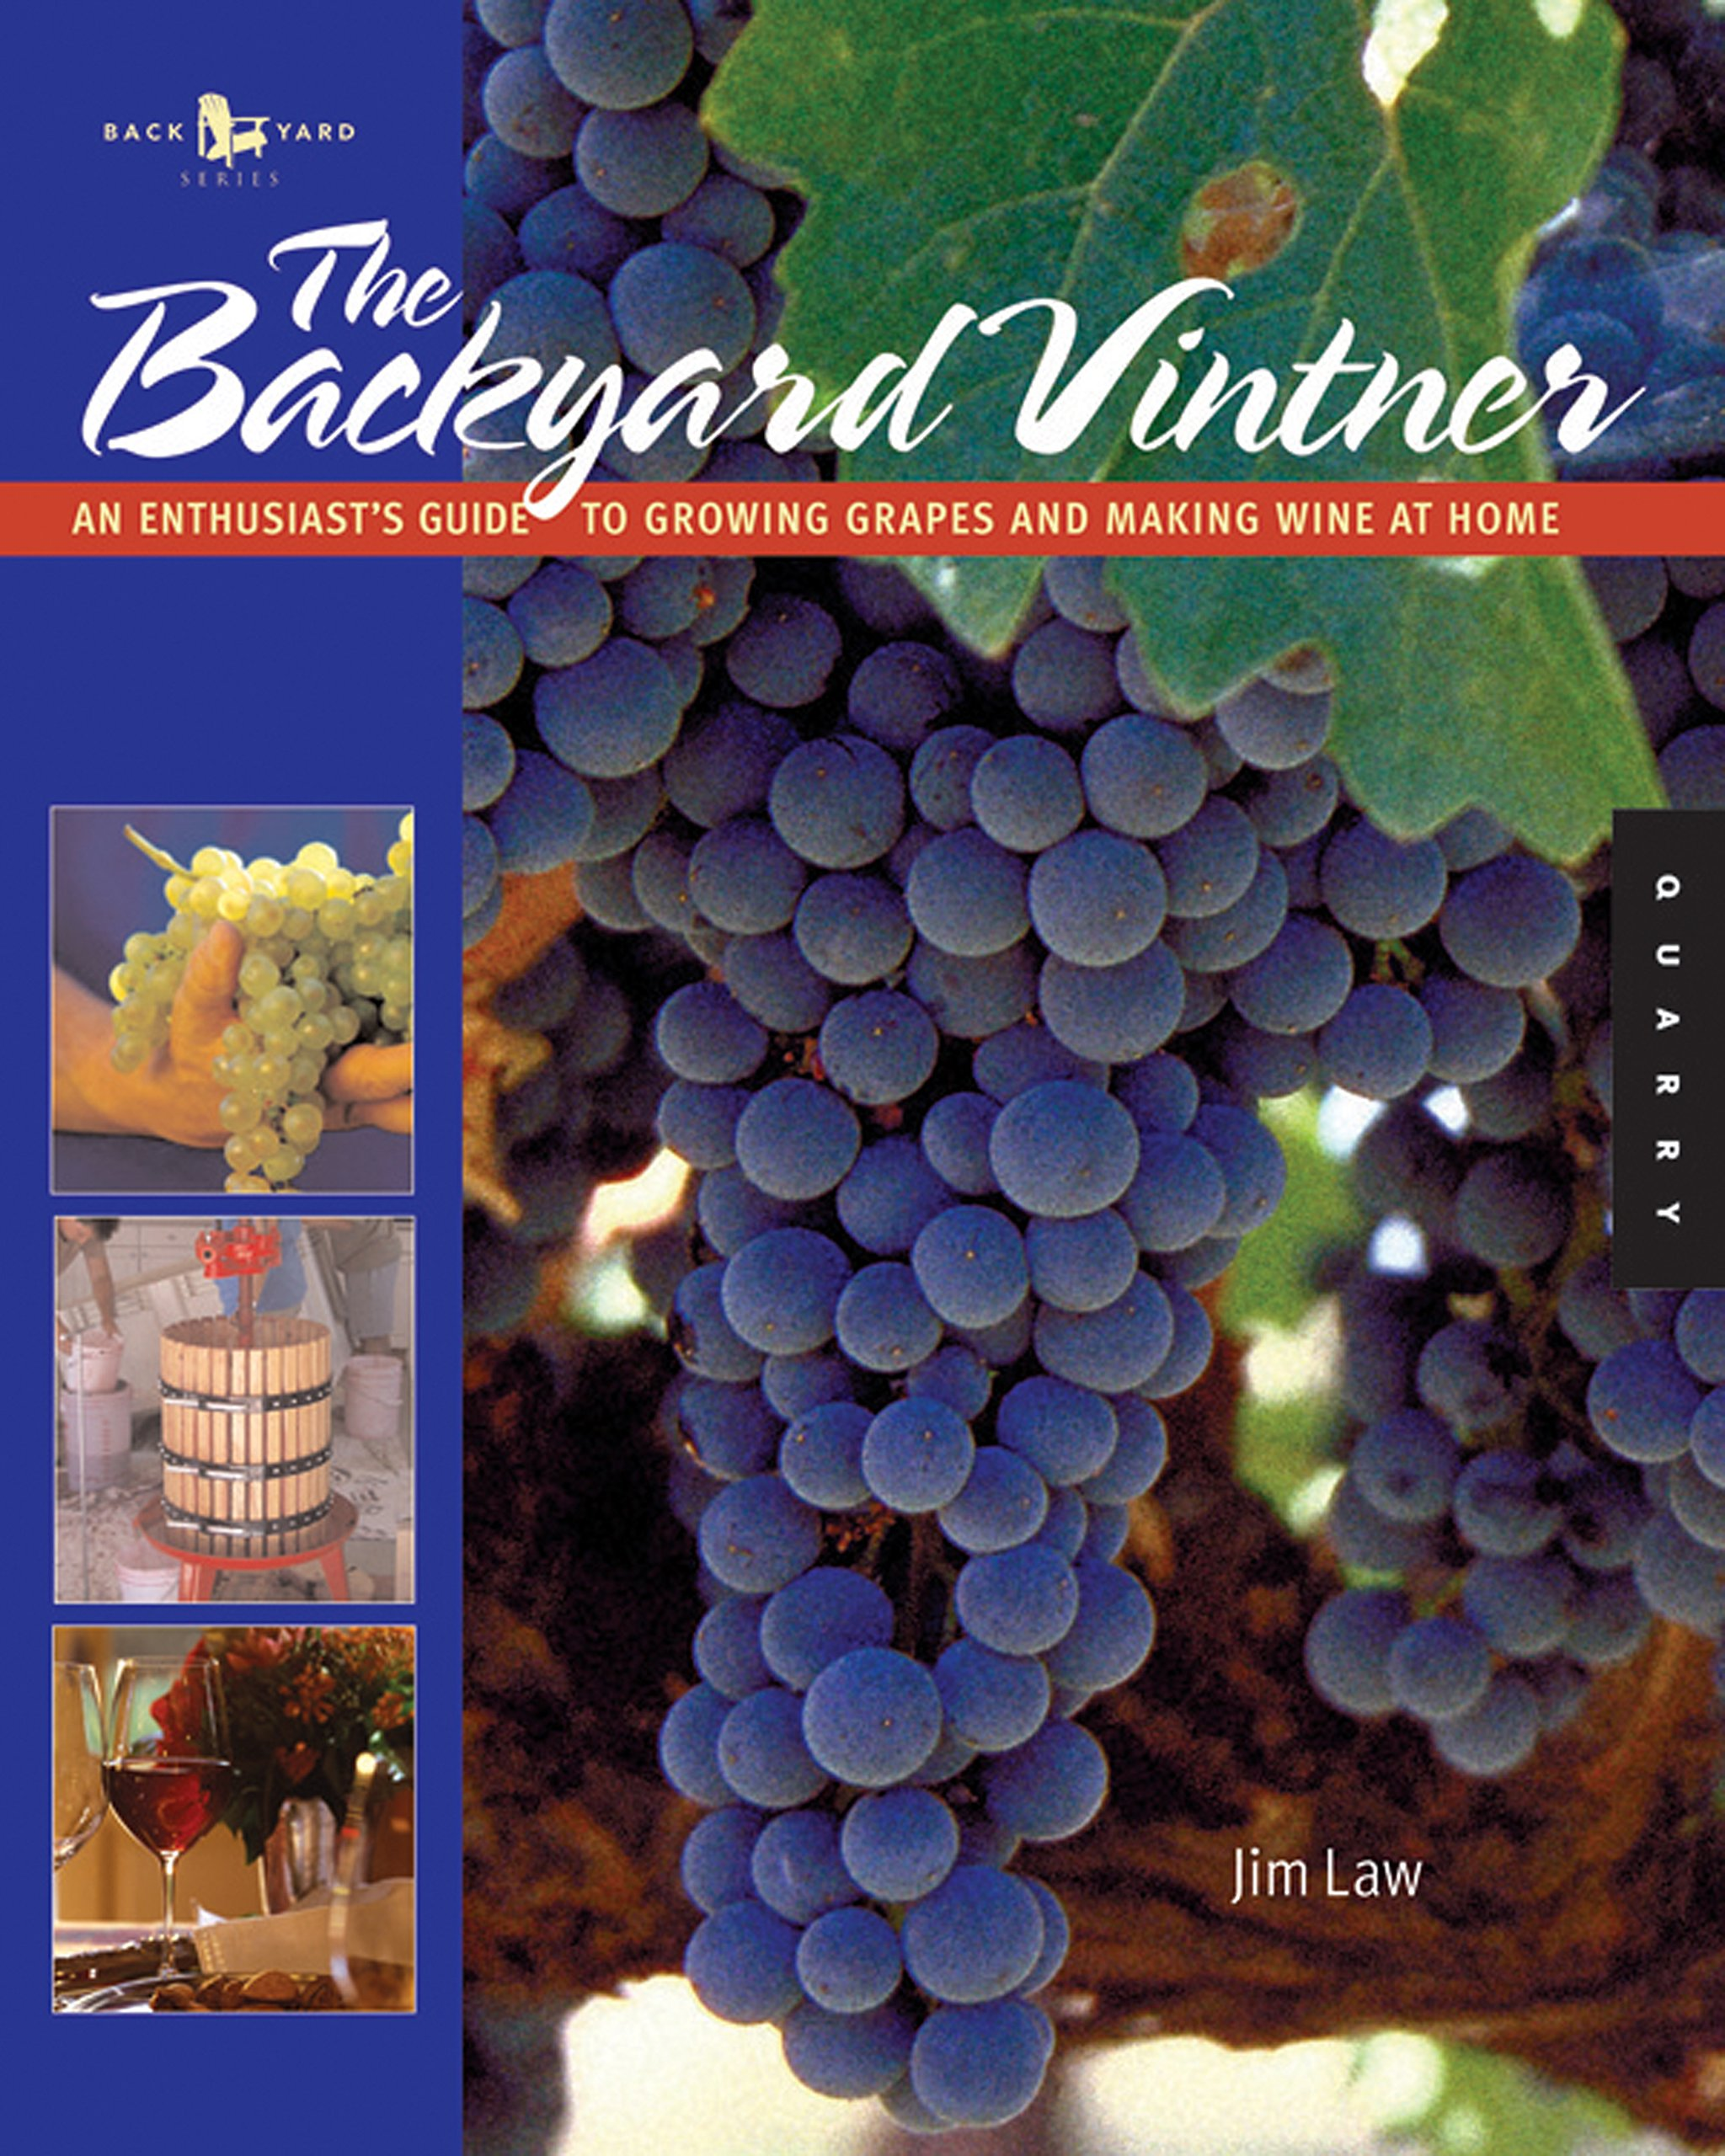 The Backyard Vintner: An Enthusiast's Guide to Growing Grapes and Making Wine at Home Paperback – November 1, 2005 Jim Law Quarry Books 1592531989 CKB088000